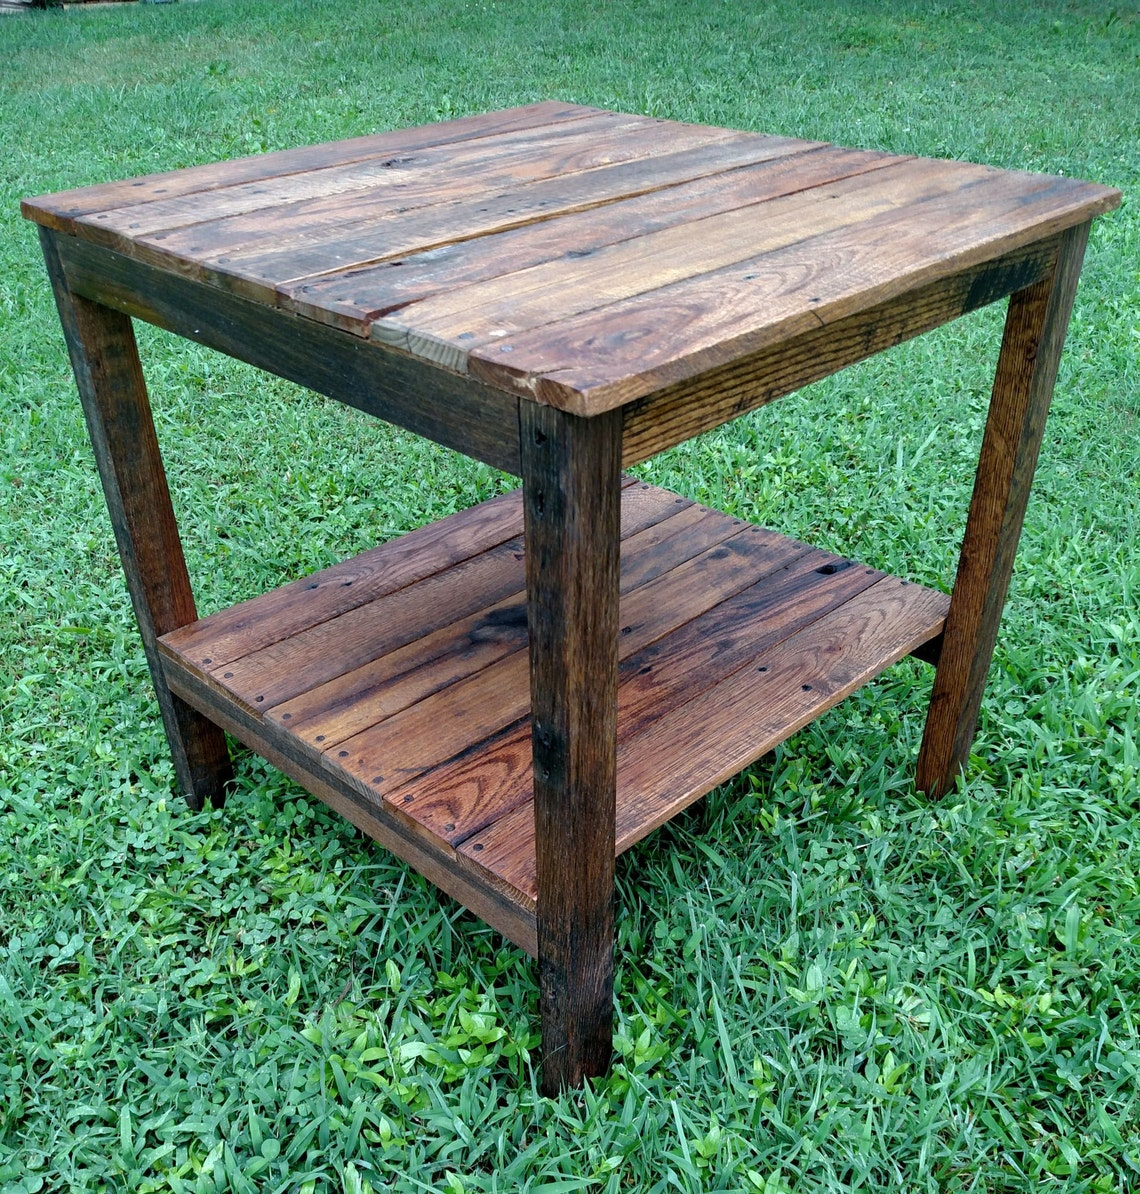 Reclaimed Pallet Wood End Table - Vintage-Rustic Look *FREE SHIPPING*